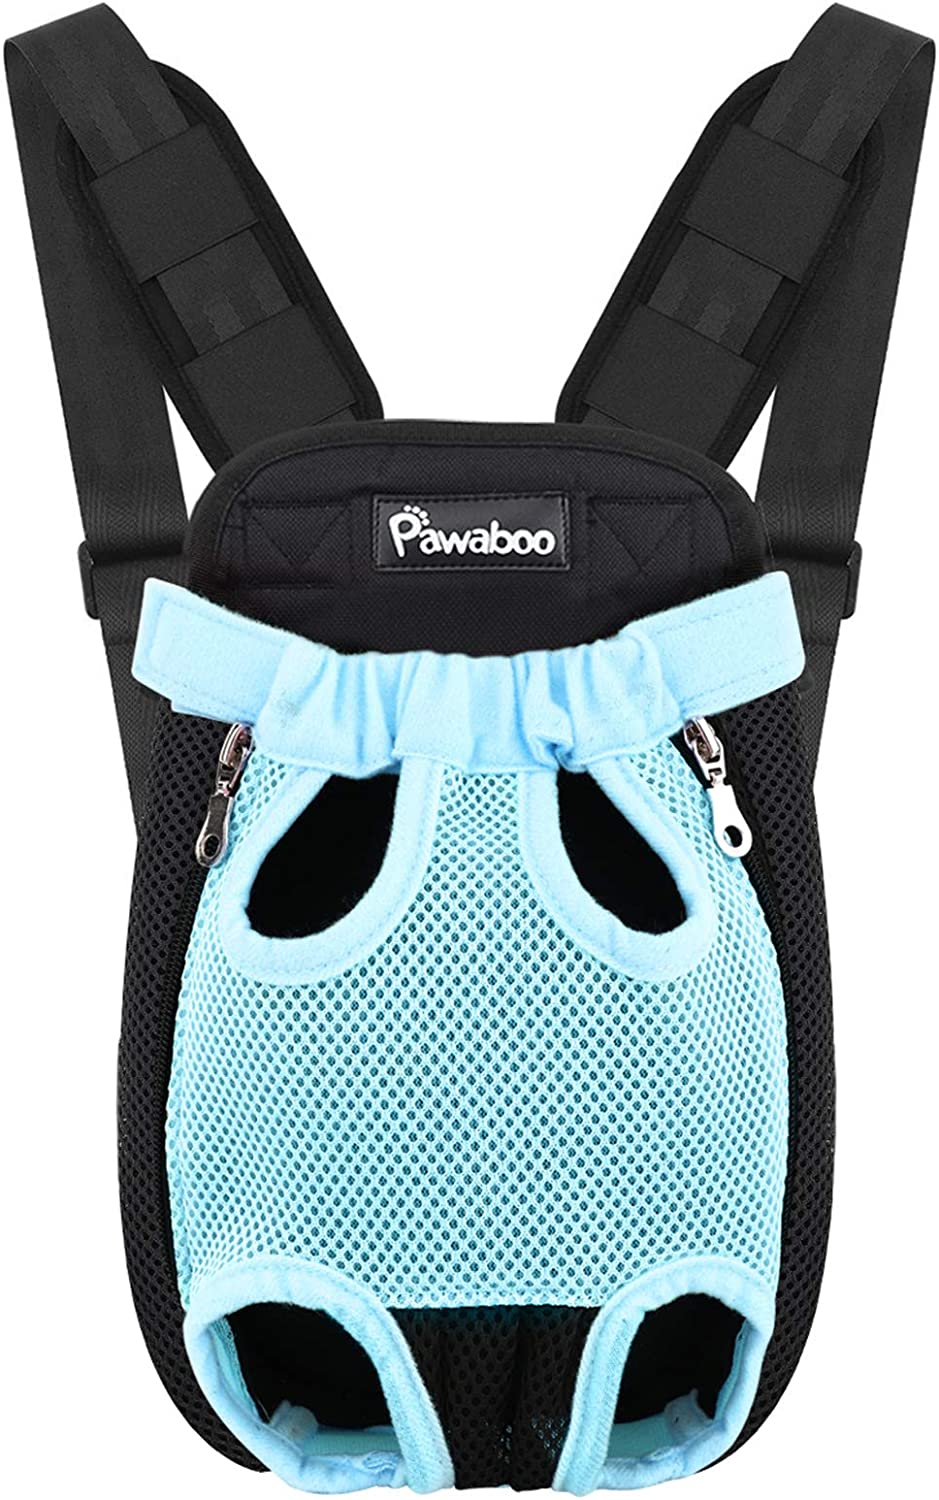 Legs Out PAWABOO Pet Carrier Backpack Adjustable Pet Front Cat Dog Carrier Backpack Travel Bag Easy-Fit for Traveling Hiking Camping for Small Medium Dogs